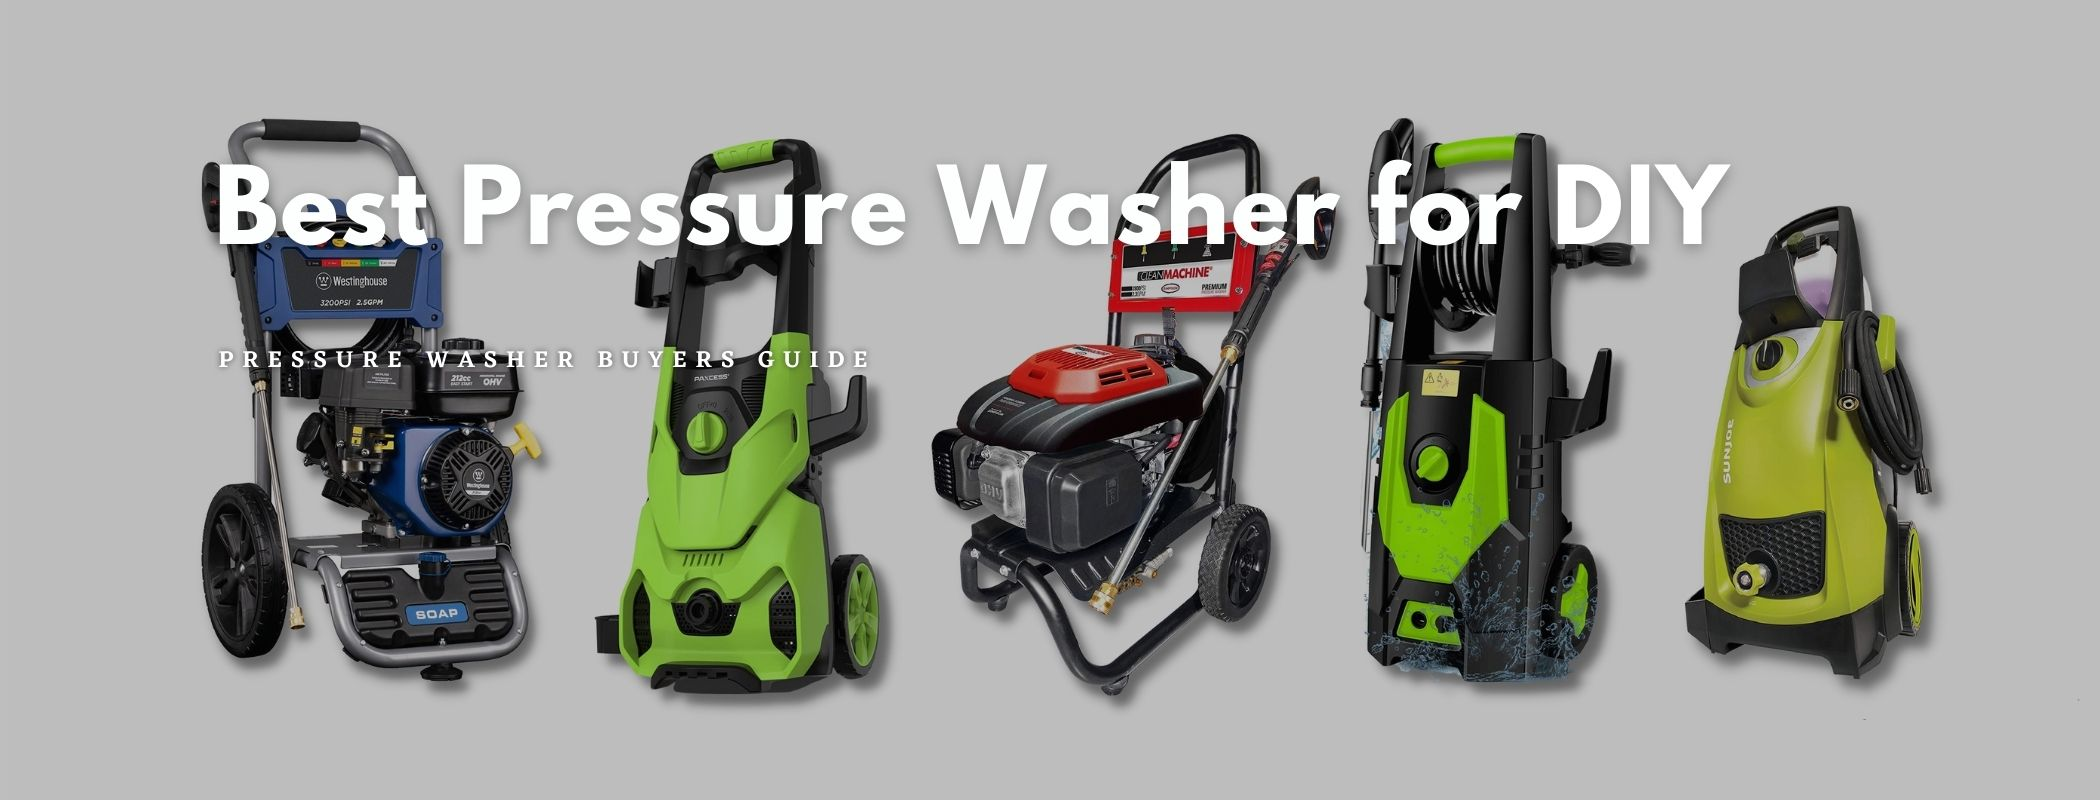 Best Pressure Washer for DIY – Buyers Guide